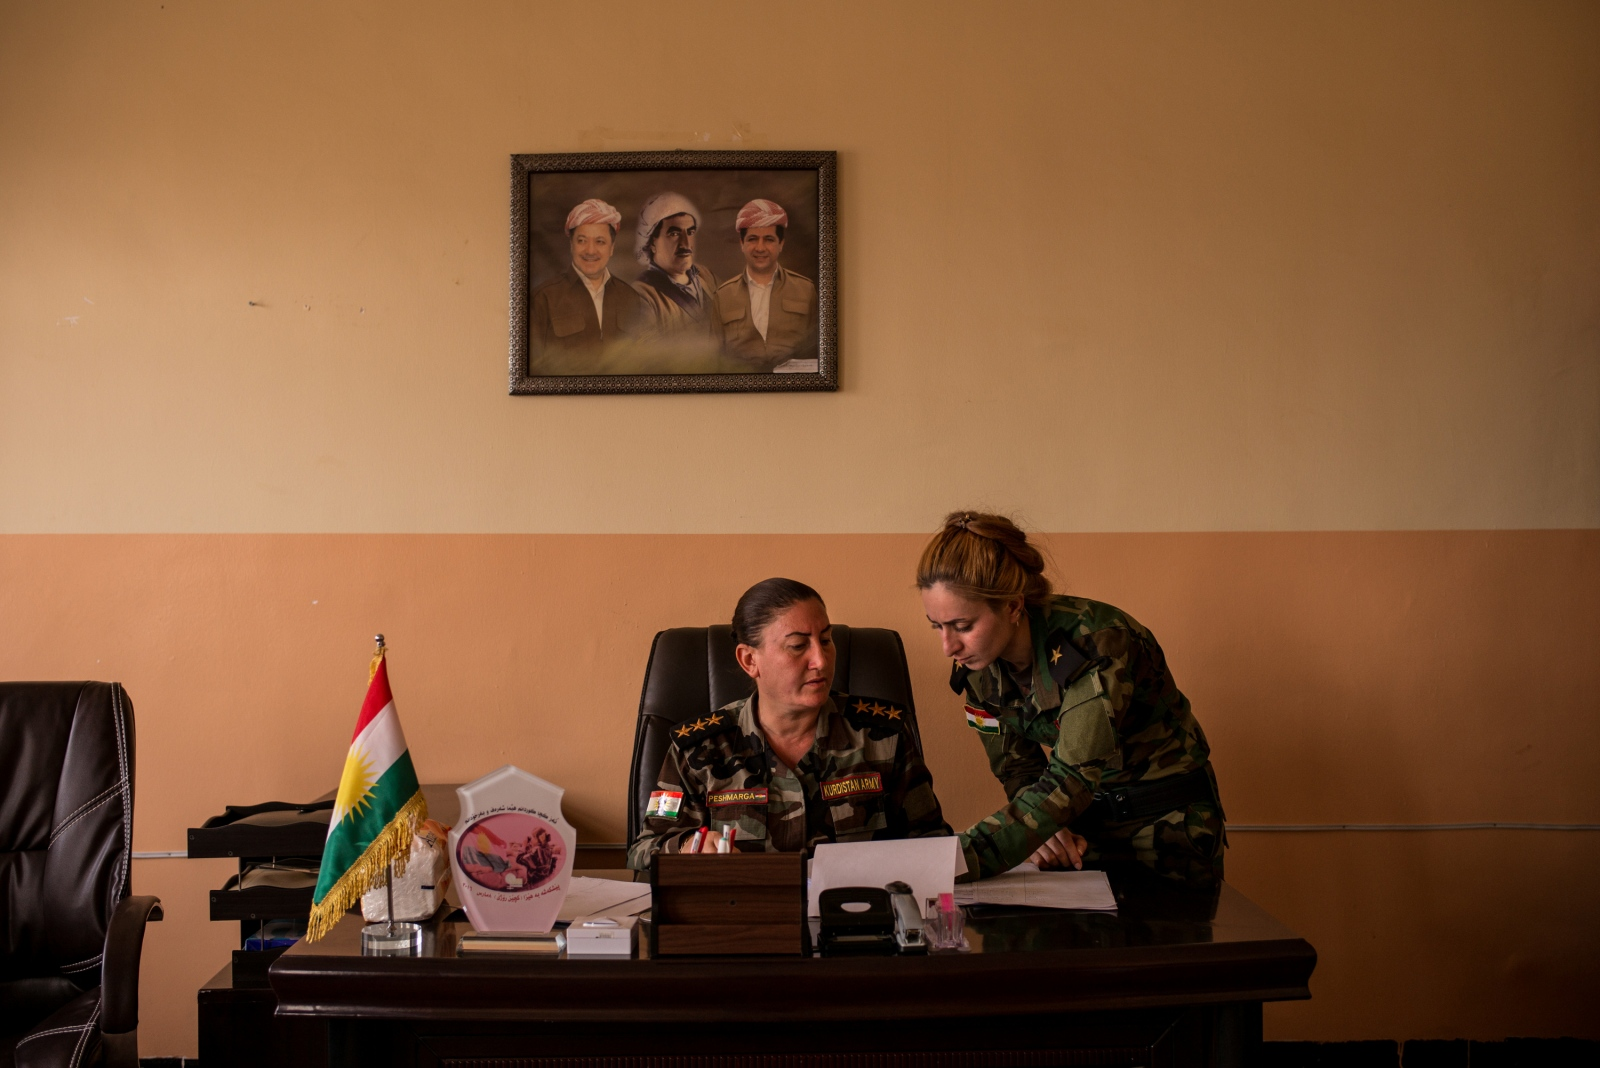 Captain Khatoon Khider, center, is assisted by her deputy in the battalion's office near Sinjar, in Kurdistan, Iraq on Tuesday, August 30, 2016. Above Captain Khider is a poster depicting the Barzani family, including Masoud Barzani (left) the leader of Iraqi Kurdistan Region.